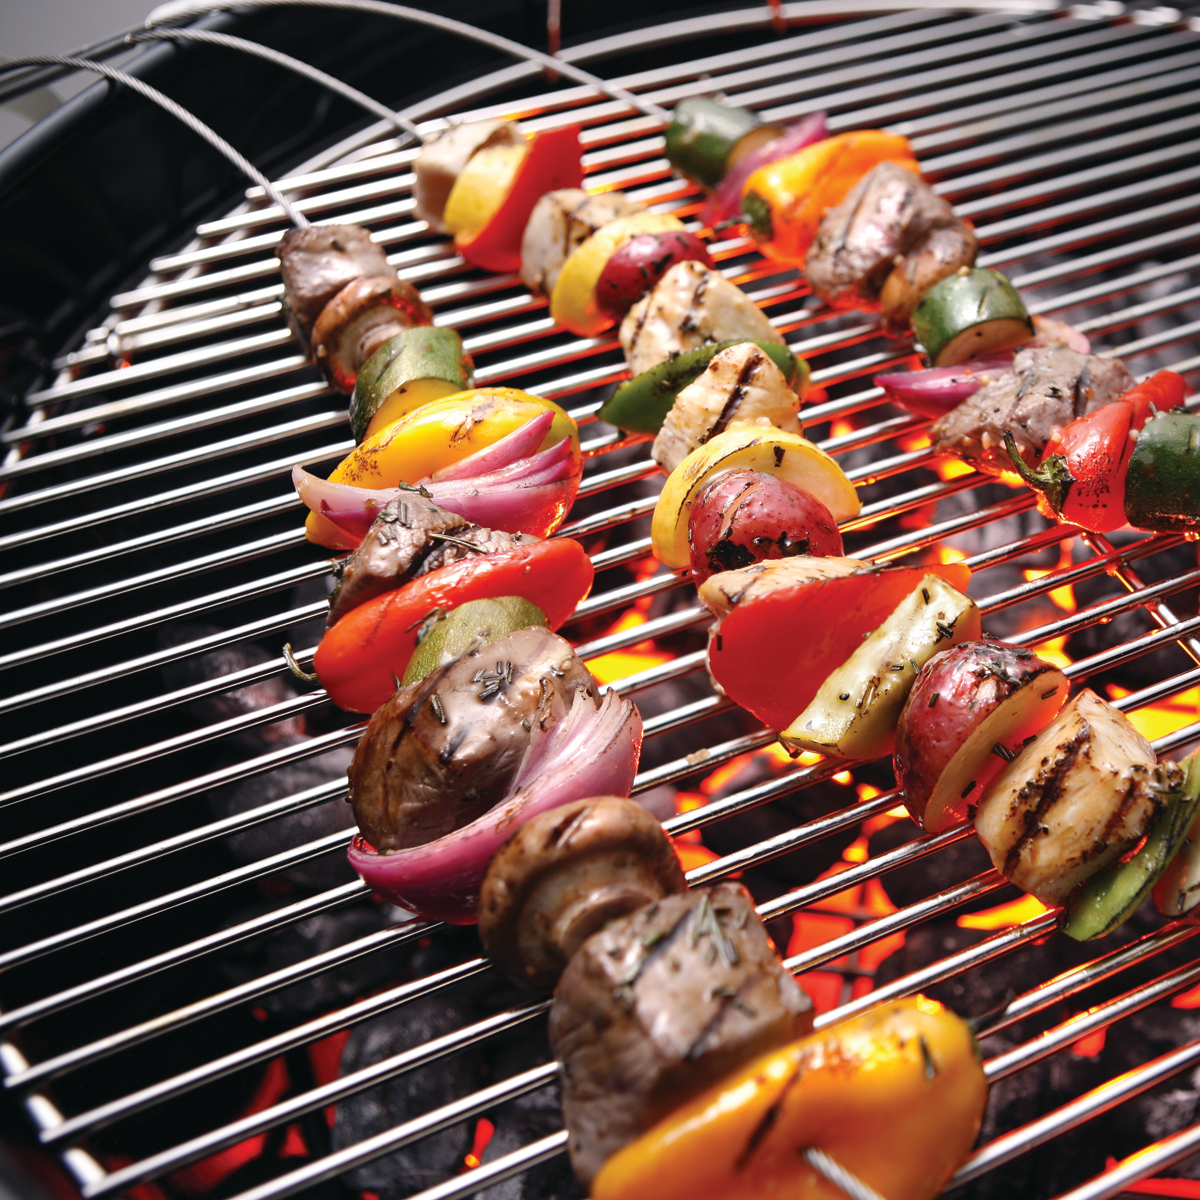 Fire Wire Stainless Steel Flexible Barbecue Skewer, Set of 2